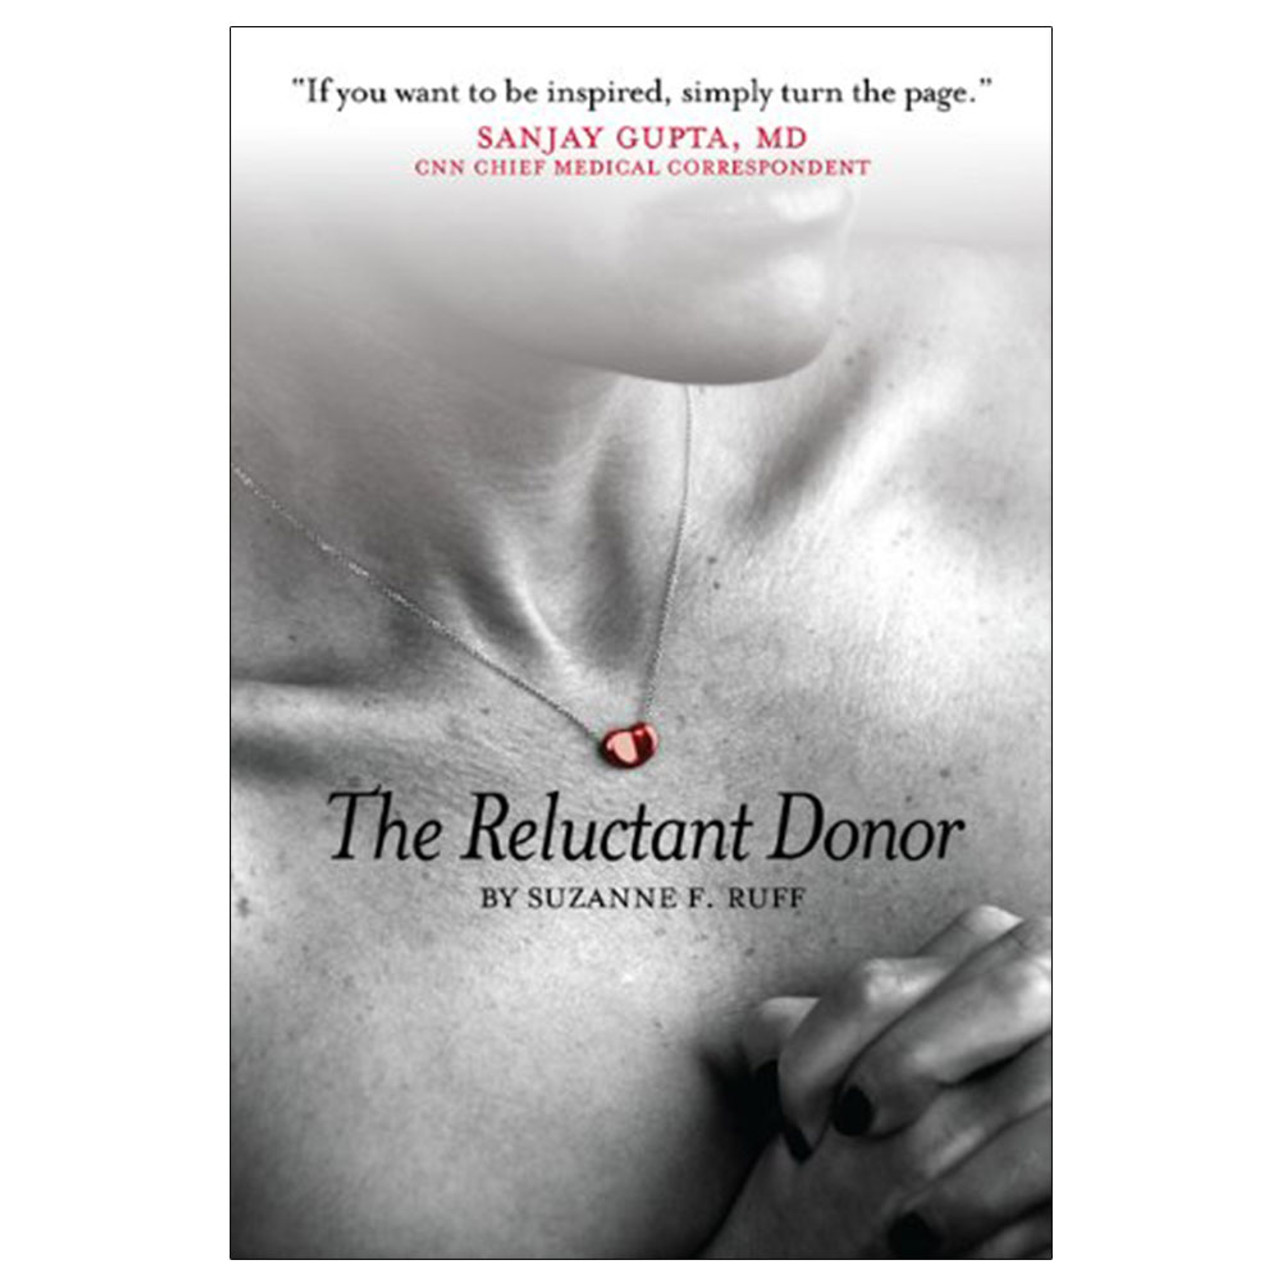 The Reluctant Donor  Suzanne Ruff